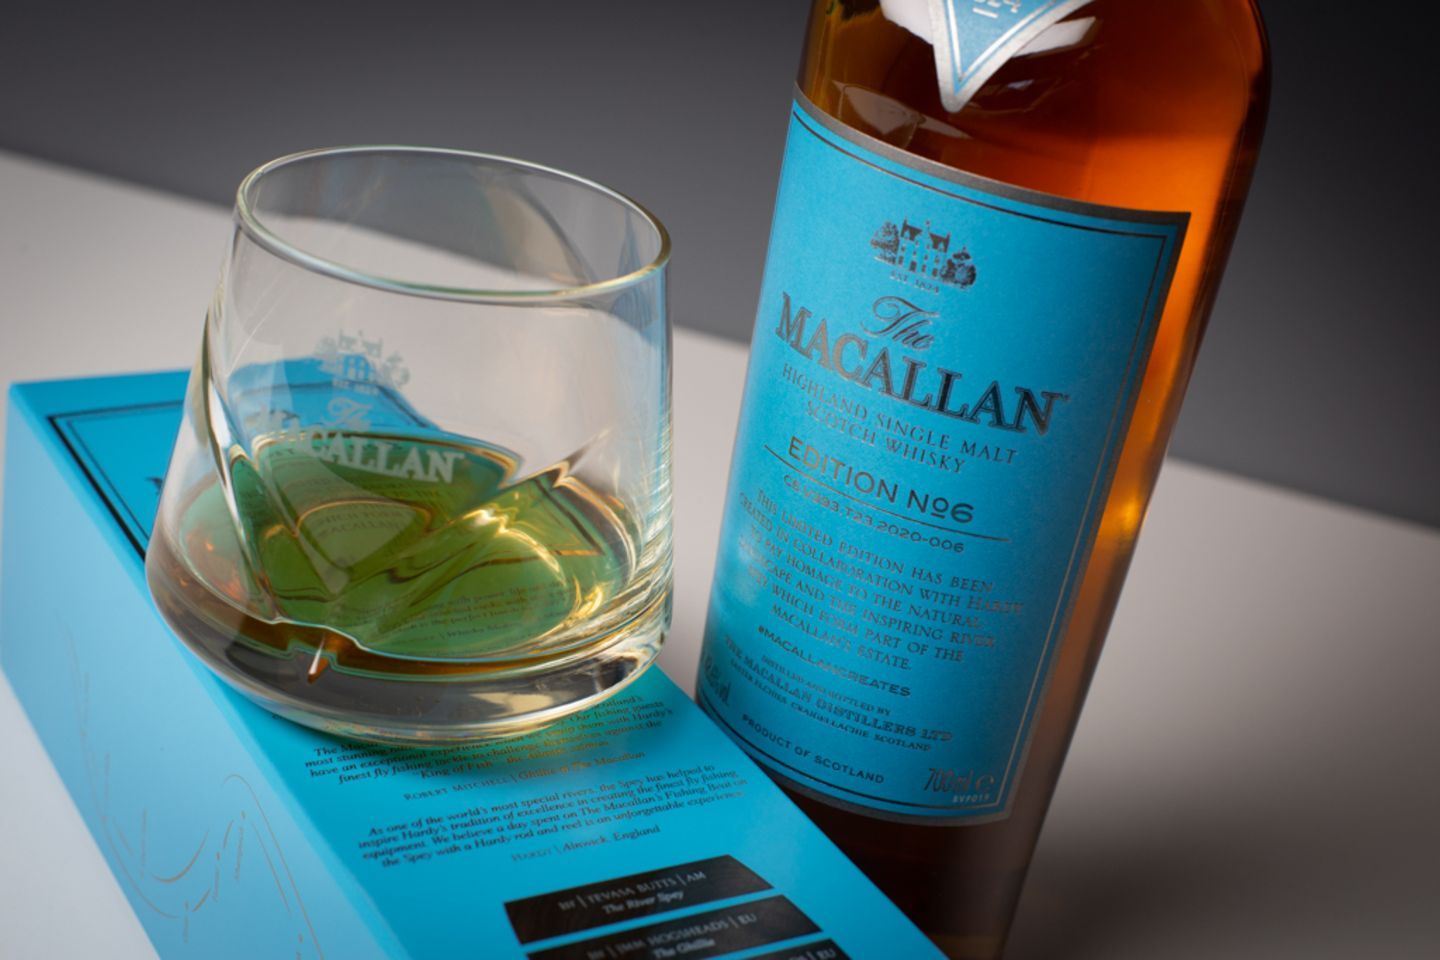 The Macallan Edition No. 6